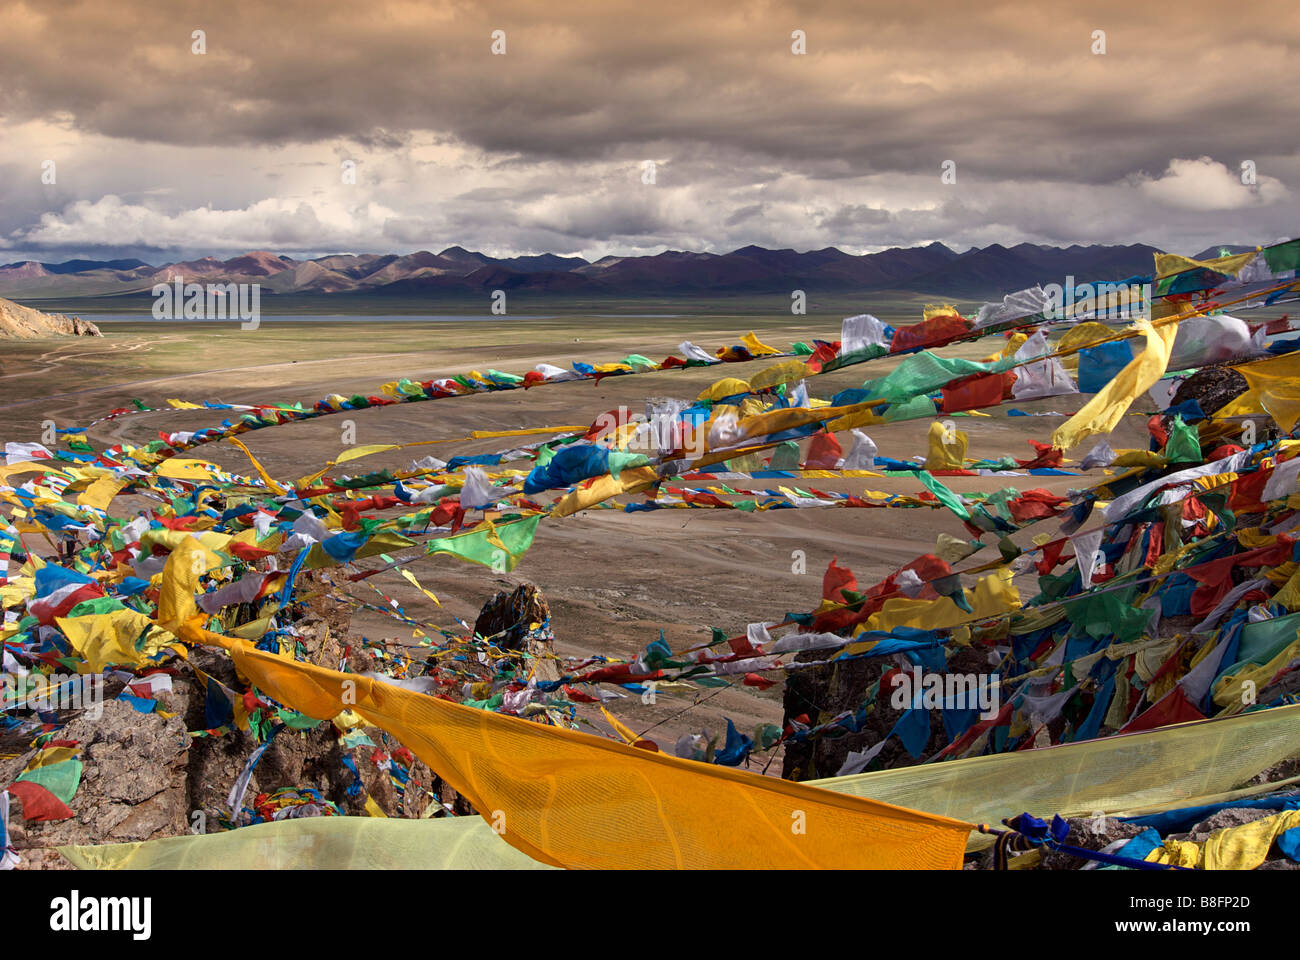 Nam Tso Lake and environs viewed from a hilltop. Prayerflags billowing in the wind - Stock Image